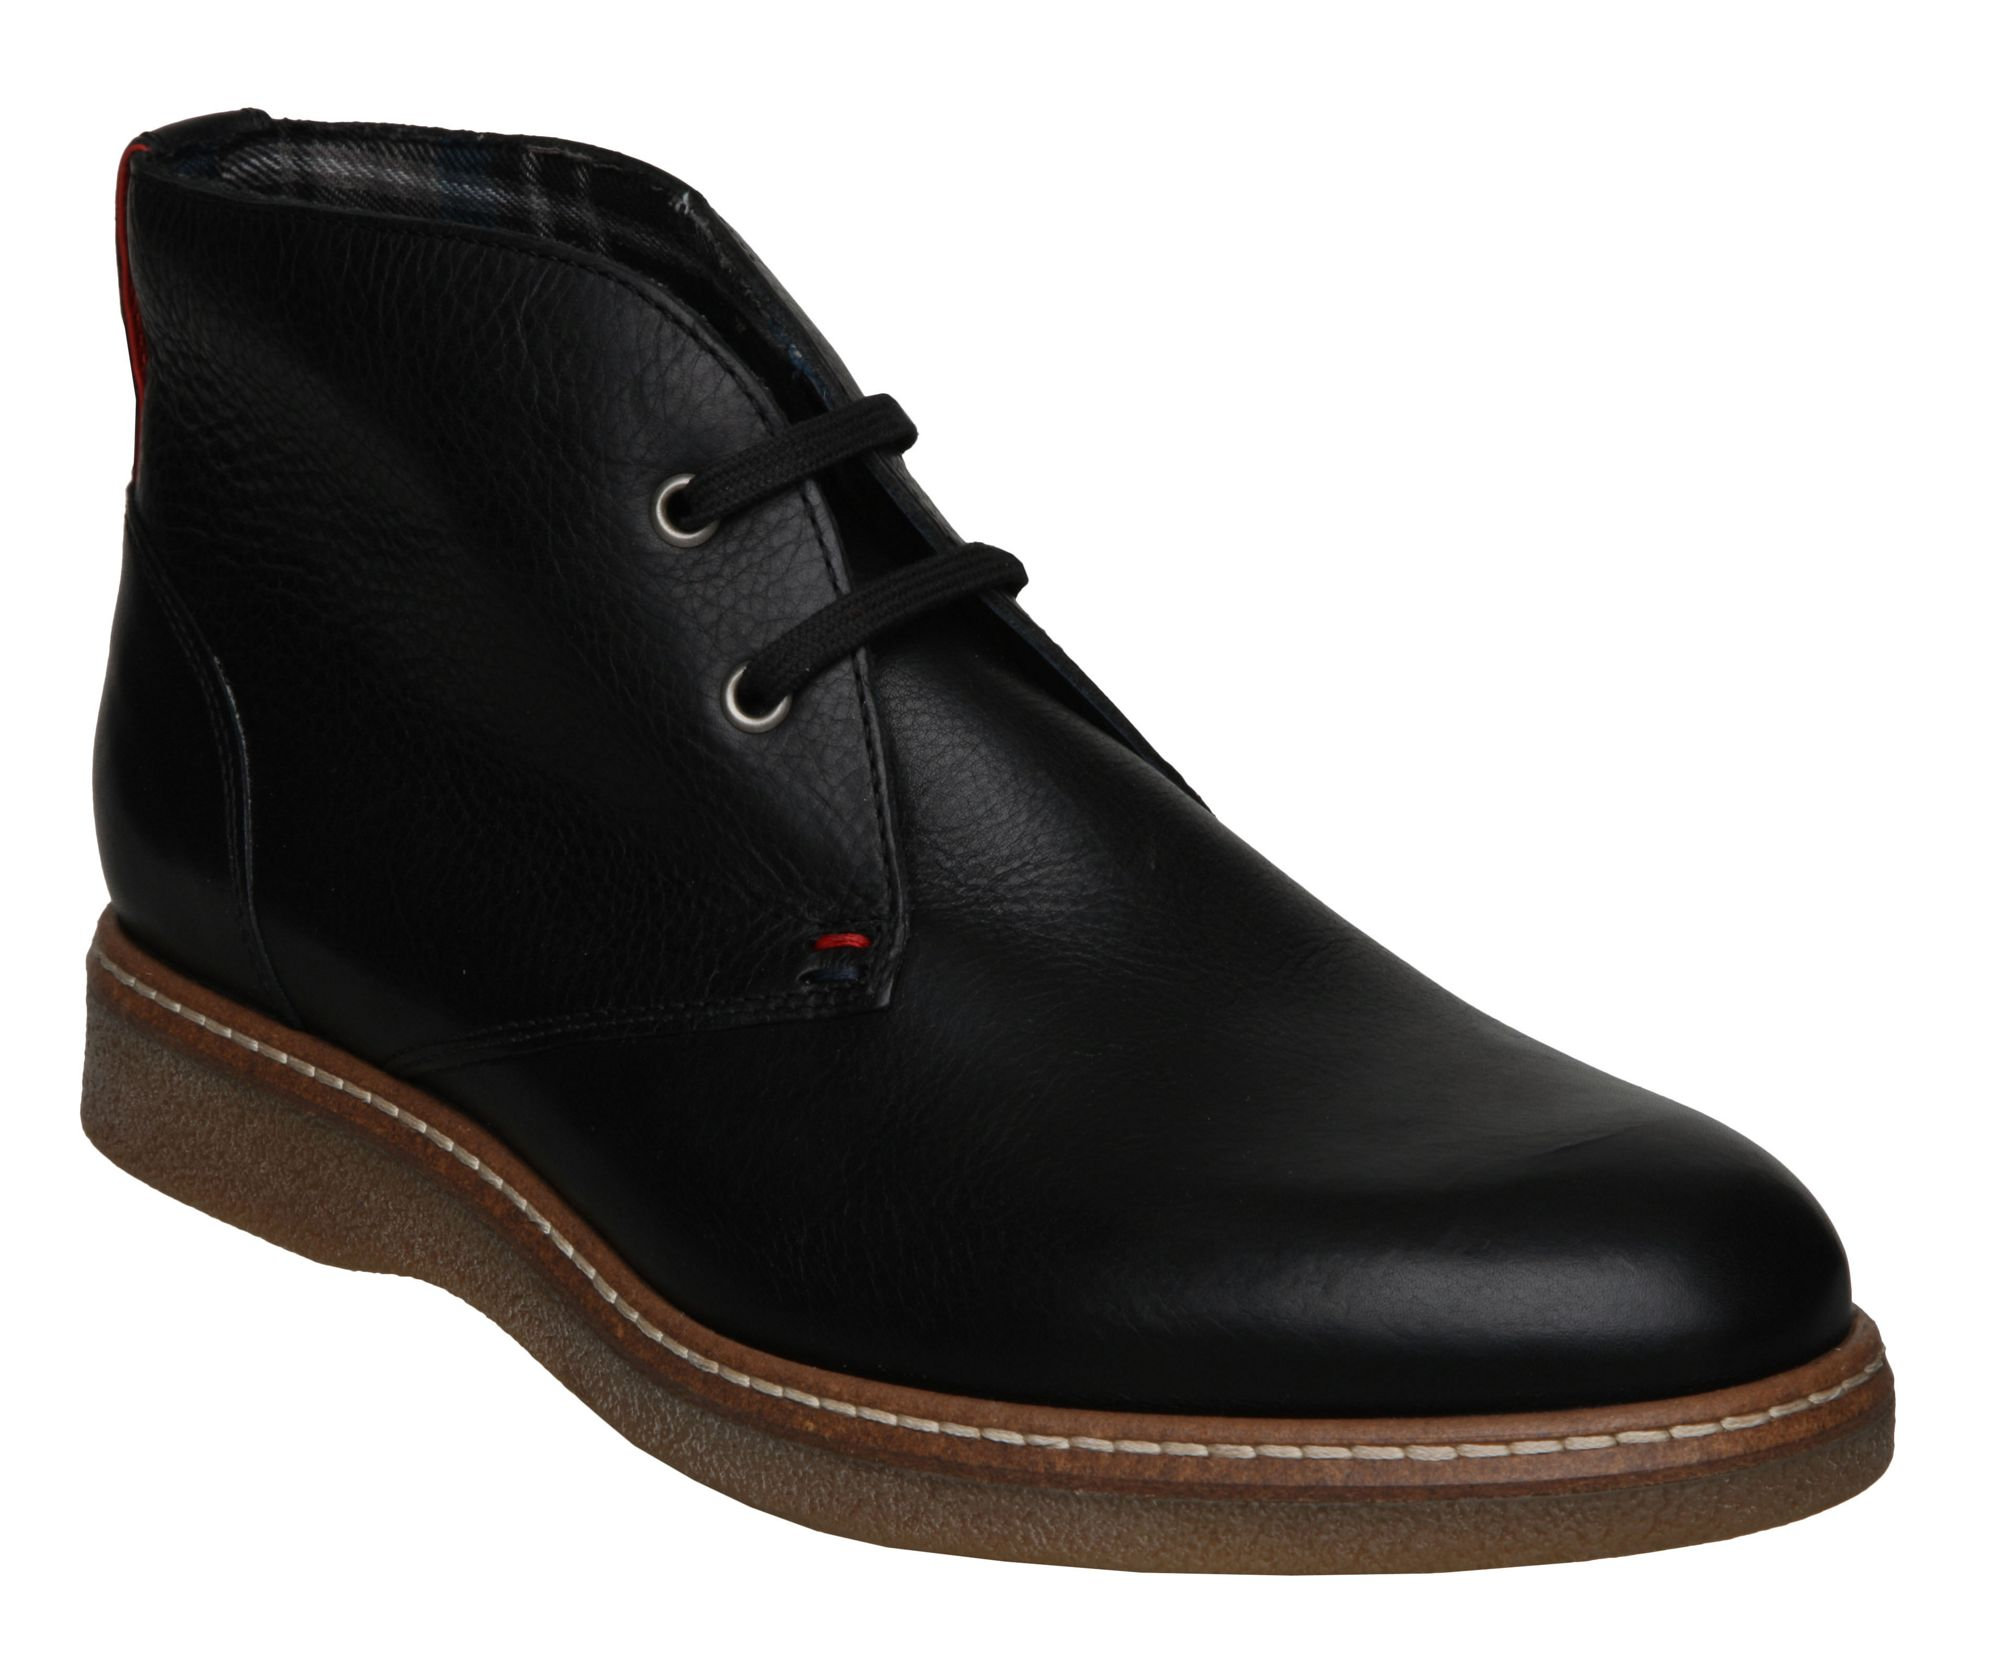 tommy hilfiger christopher 1a casual boots in black for men lyst. Black Bedroom Furniture Sets. Home Design Ideas